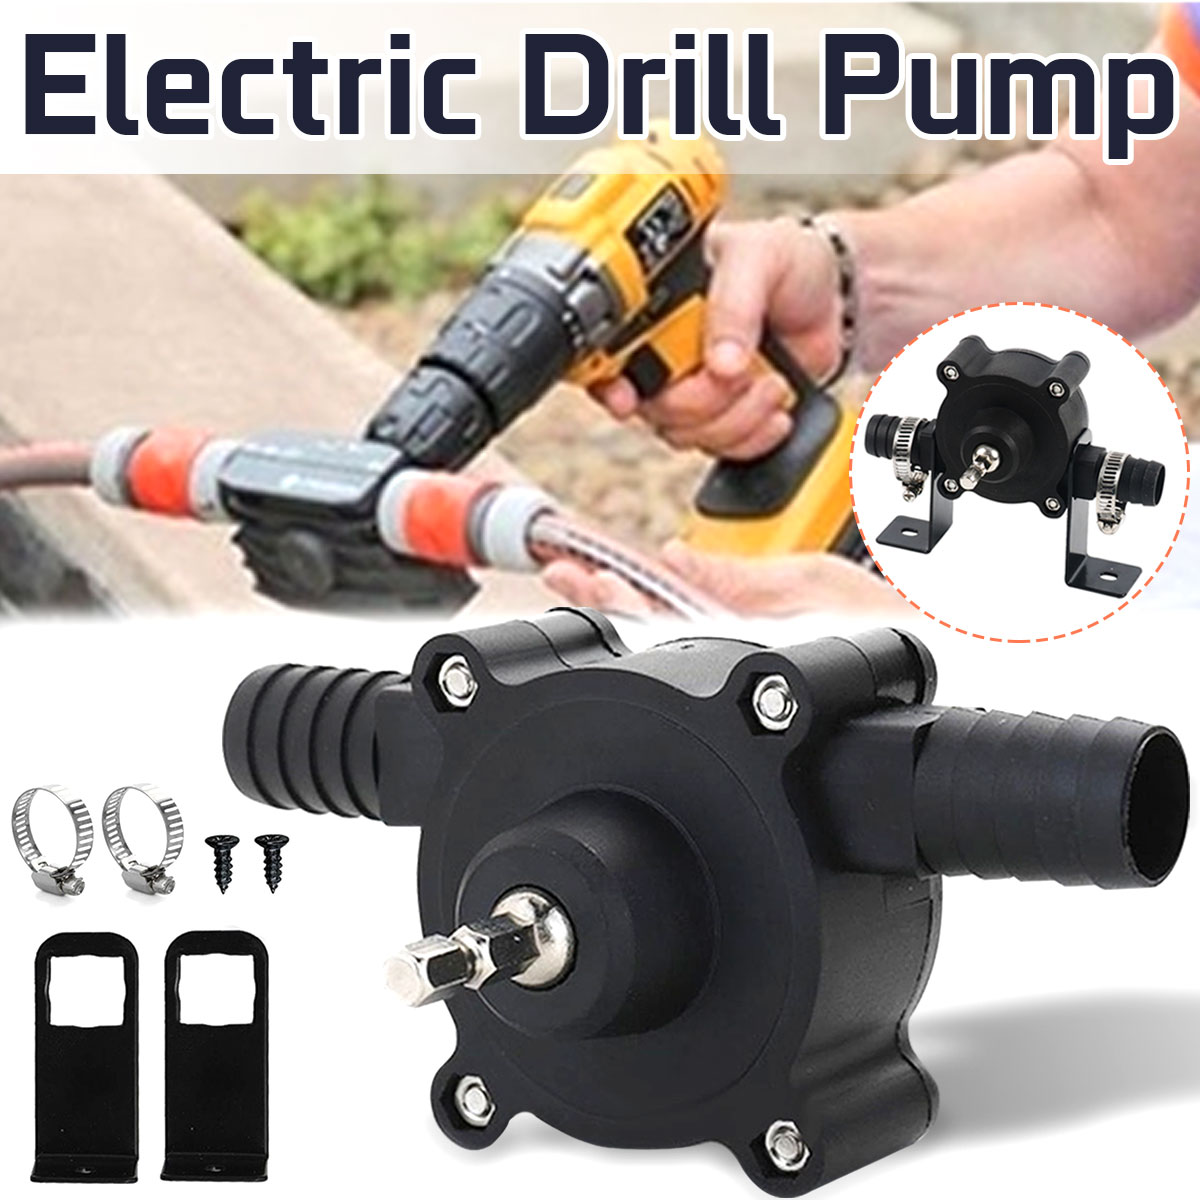 Electric Drill Pump Self Priming Transfer Pumps Oil Fluid Water Pump Cordless Electric Screwdrive Self Priming Pump Tools